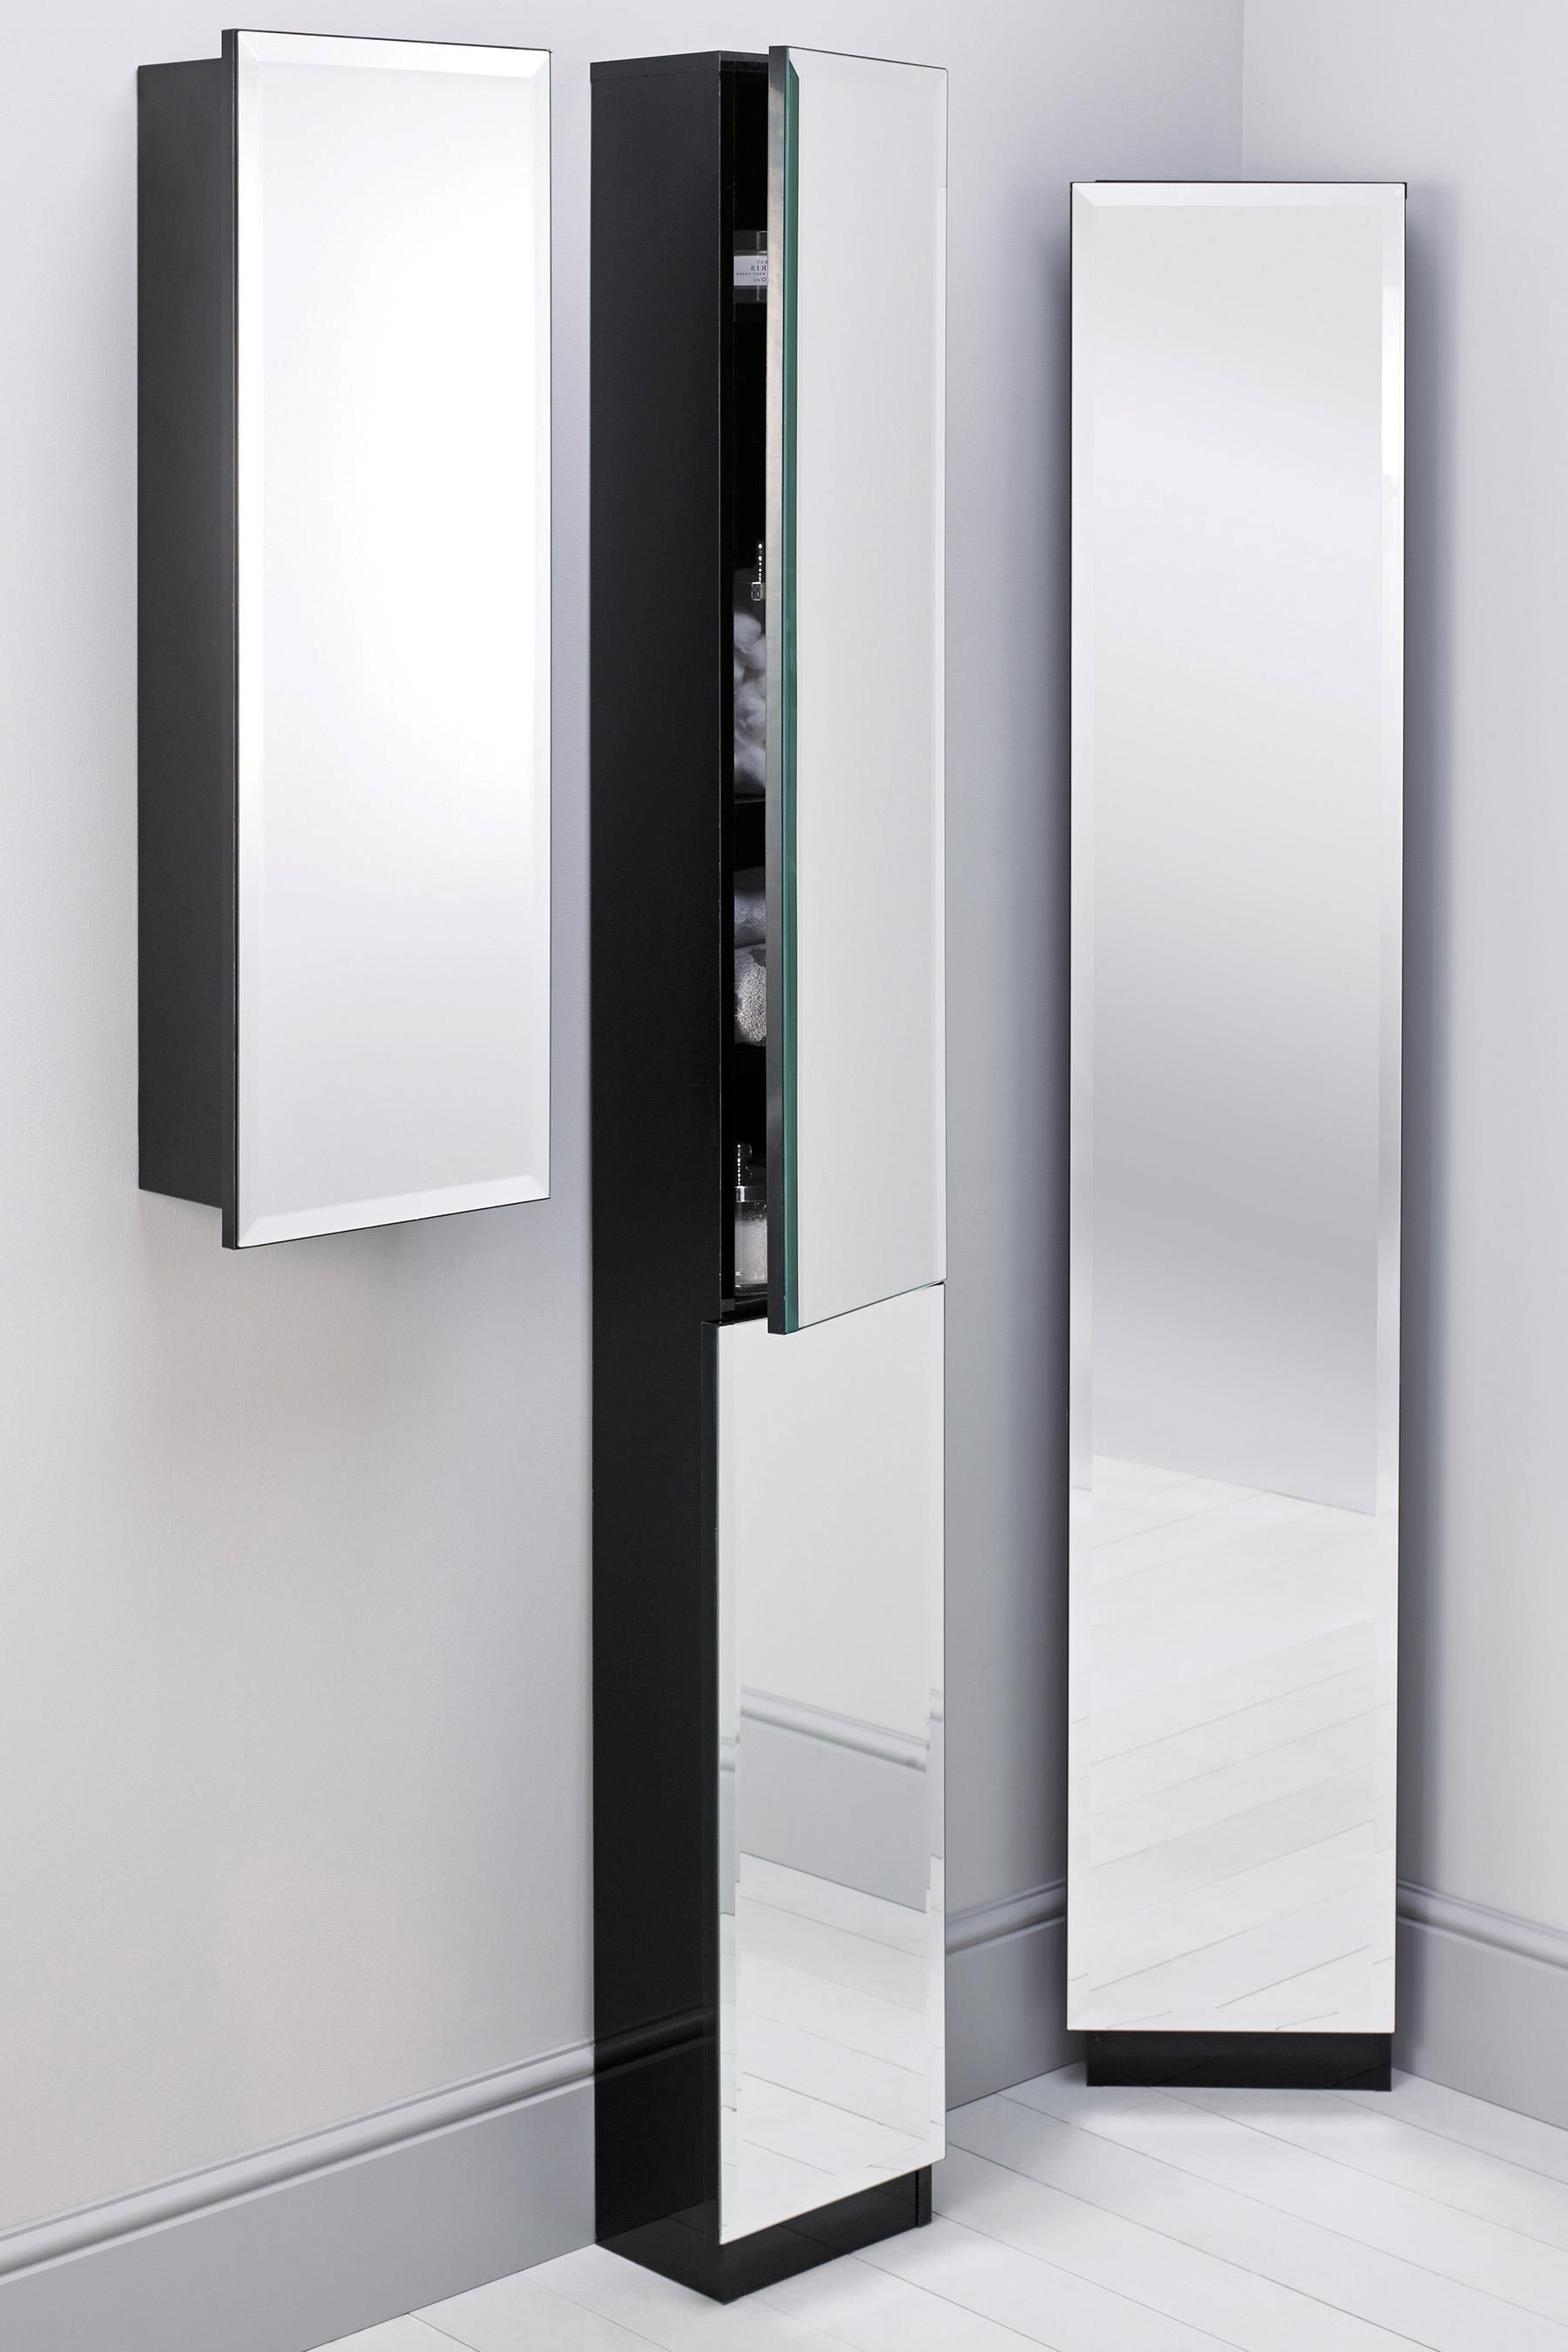 Homebase Swivel Mirror Bathroom Cabinet